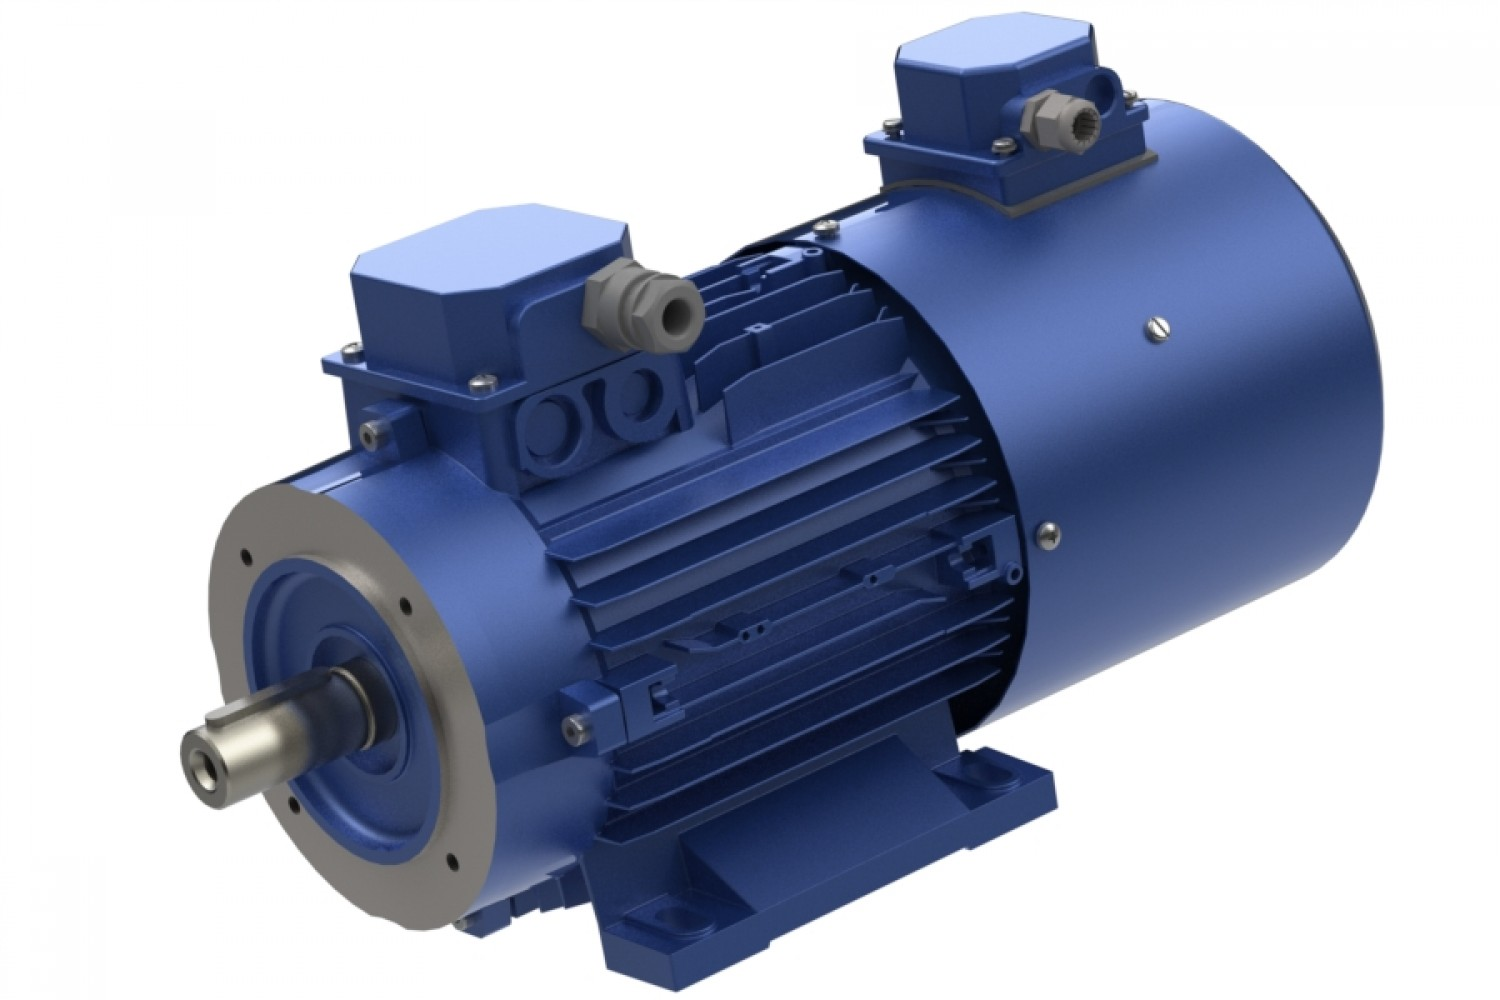 MOTORS WITH FORCED VENTILATION